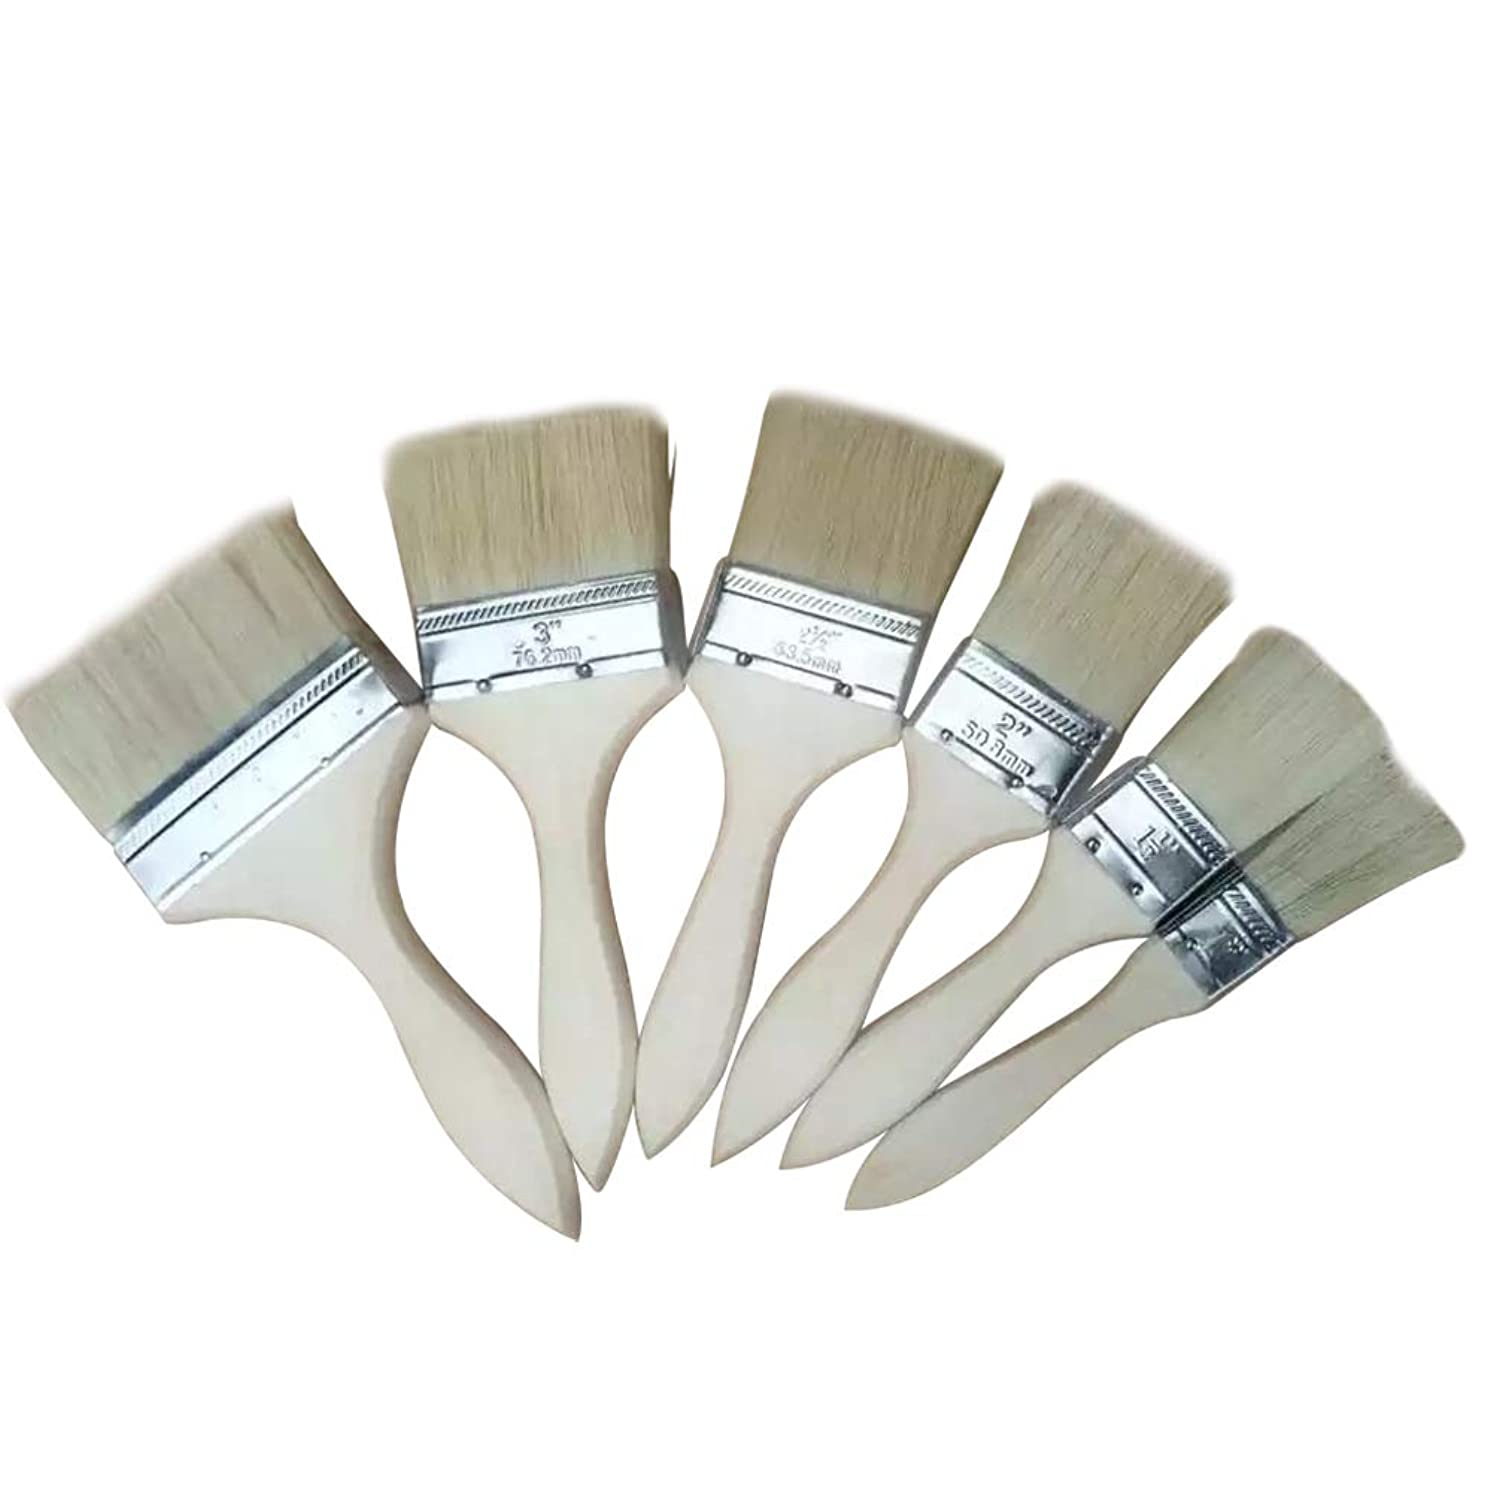 Brush Paint Stain Varnish Set with Wood Handles, Premium Bristle Paint Brushes, Paint Brushes for Paint, Stains, Varnishes, Glues